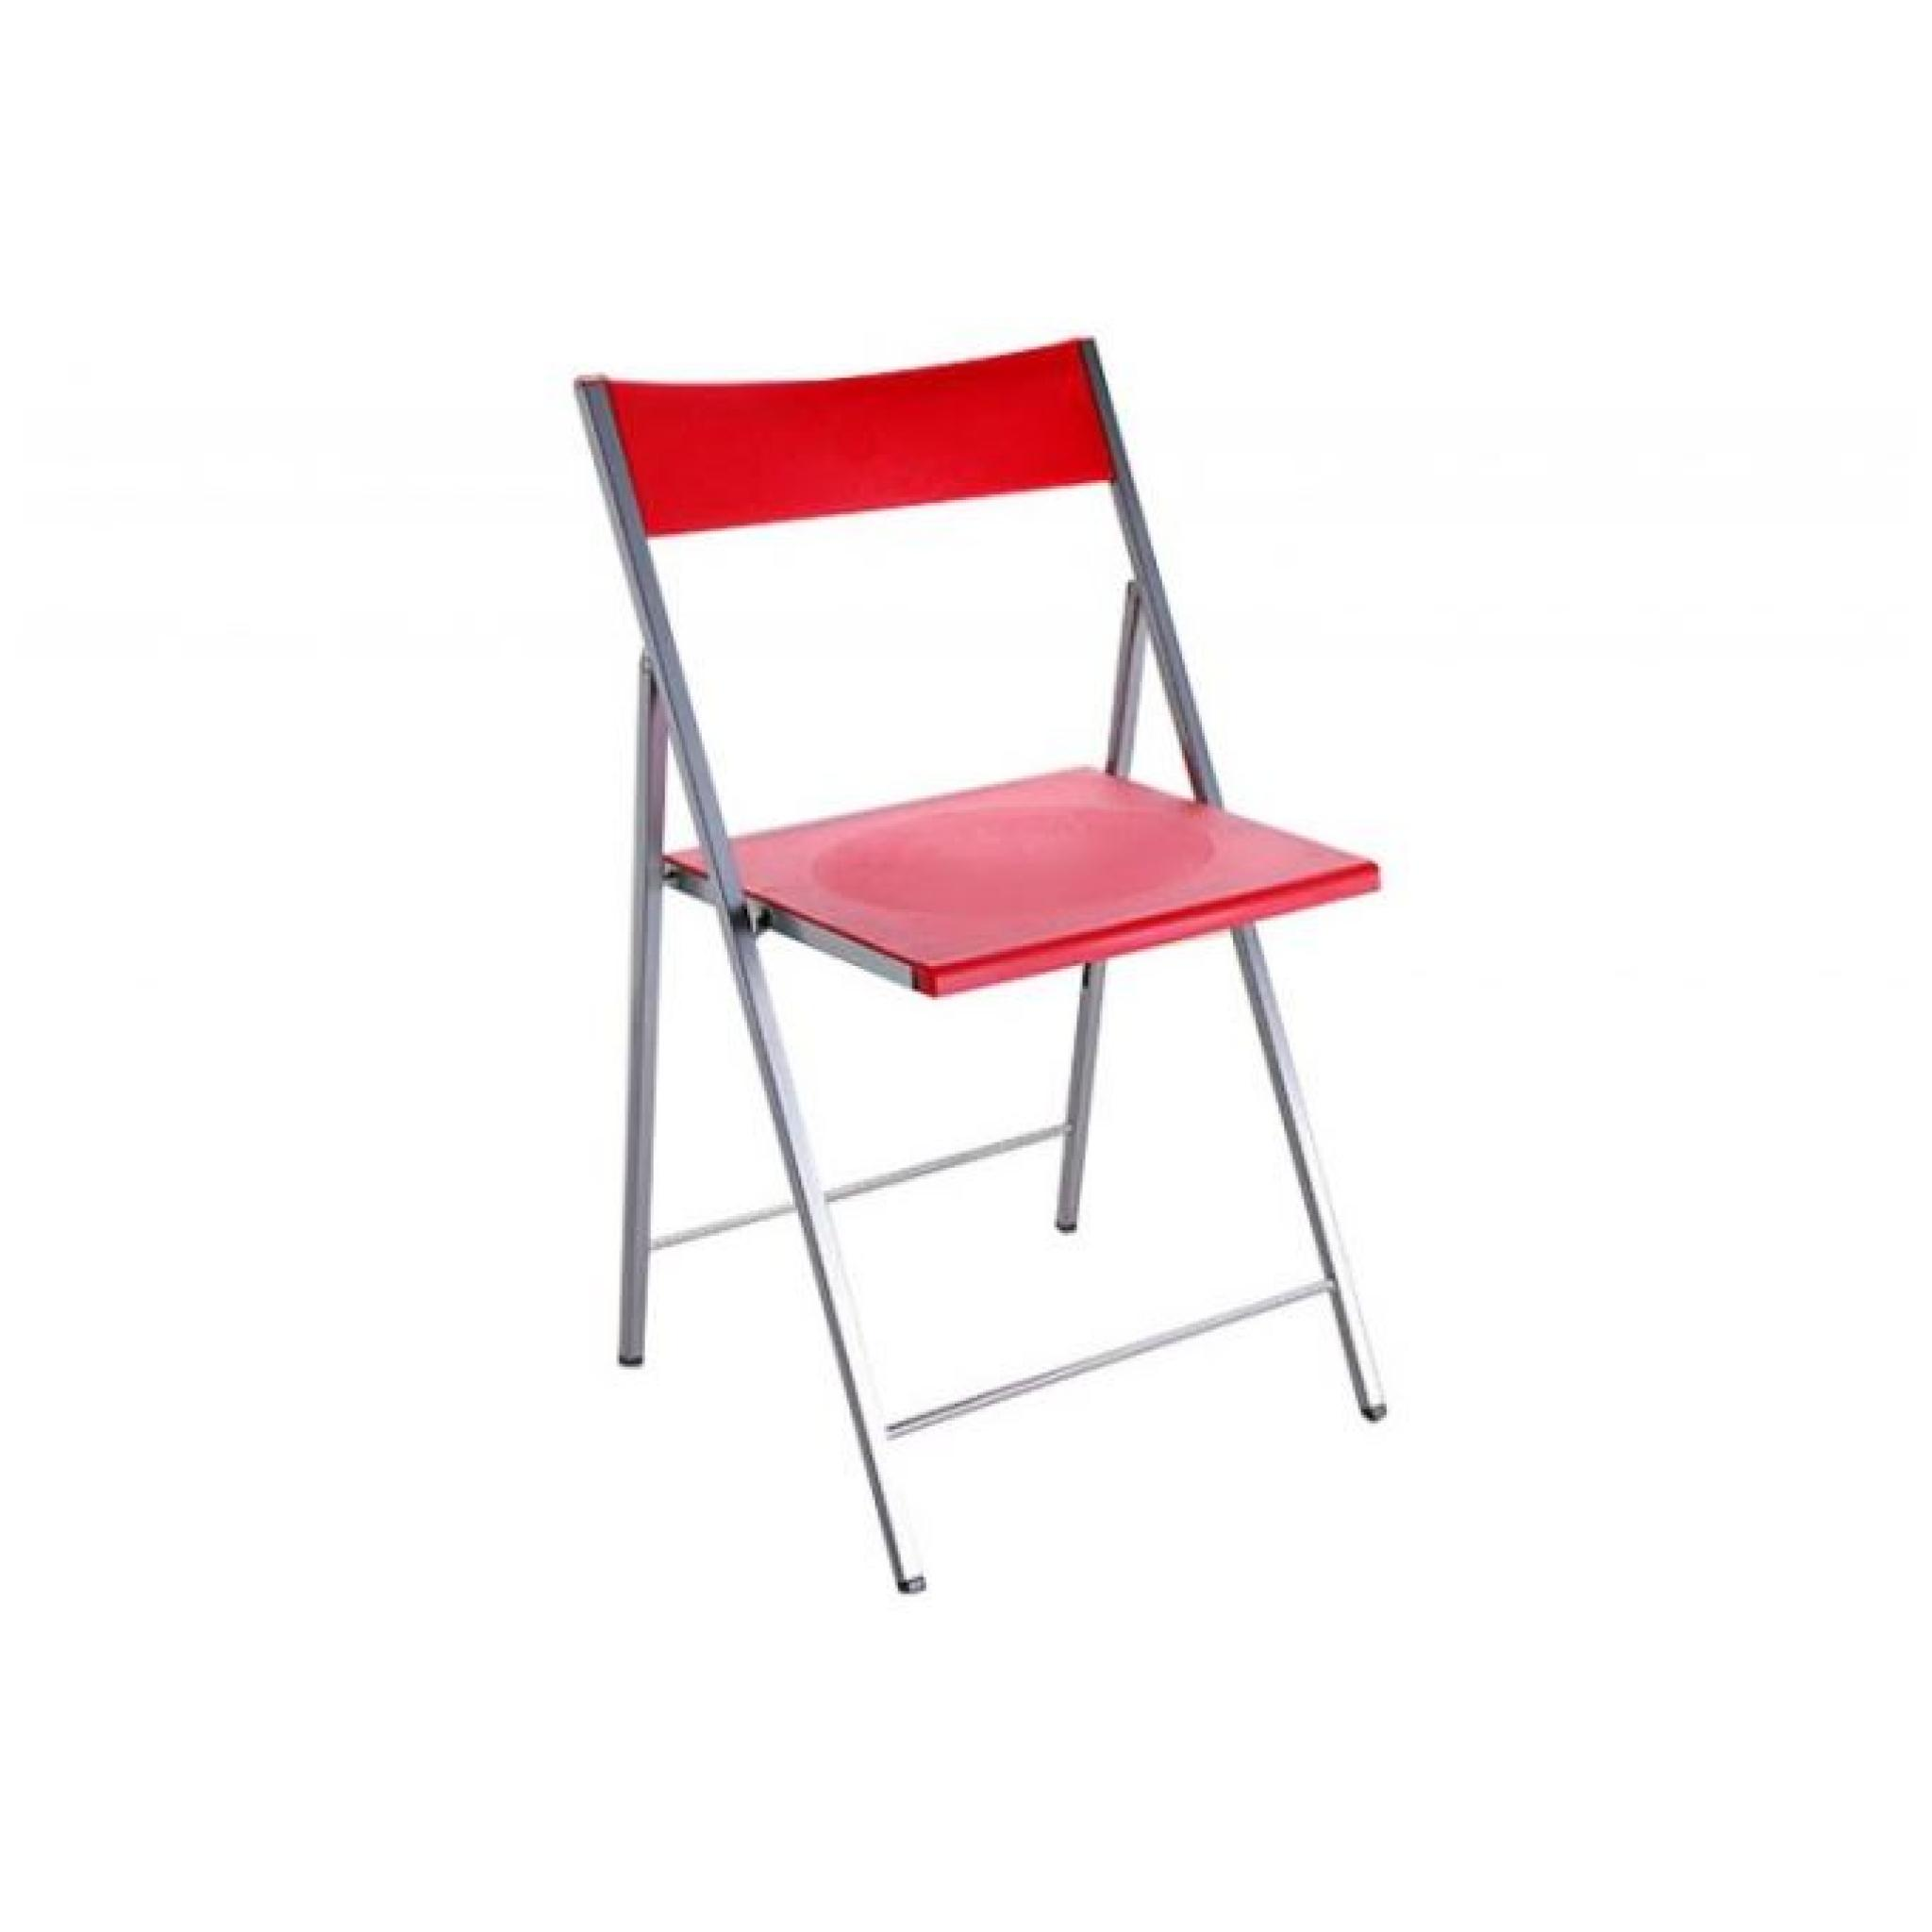 Chaise pliante pas cher ikea maison design for Chaise rar pas cher